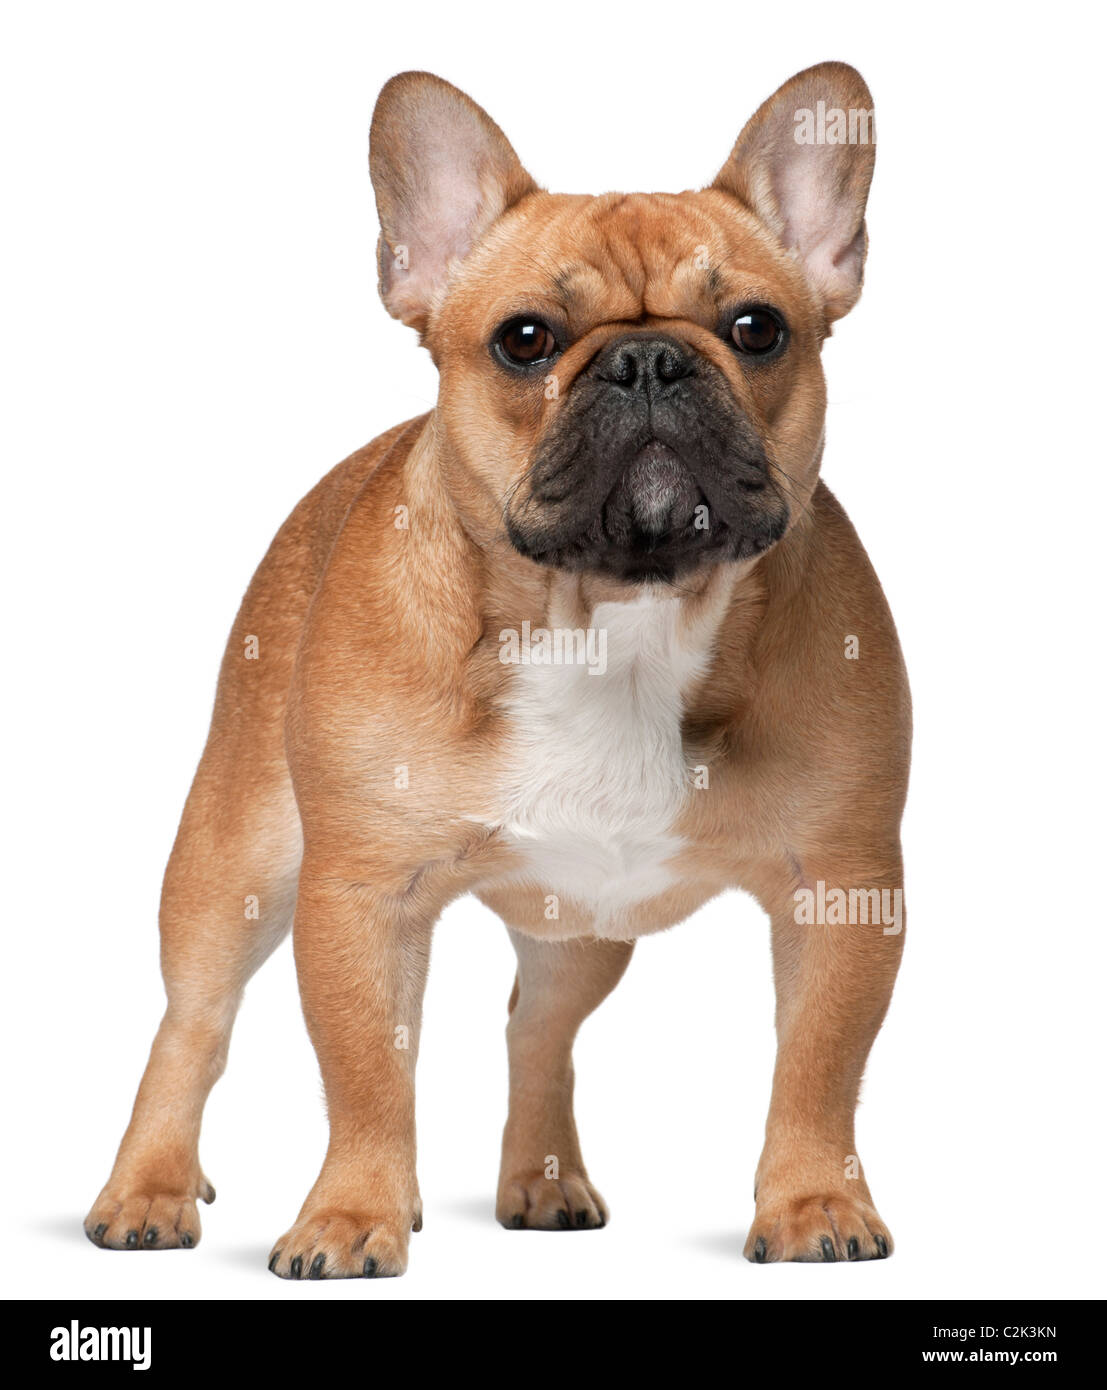 French bulldog, 9 months old, standing in front of white background - Stock Image